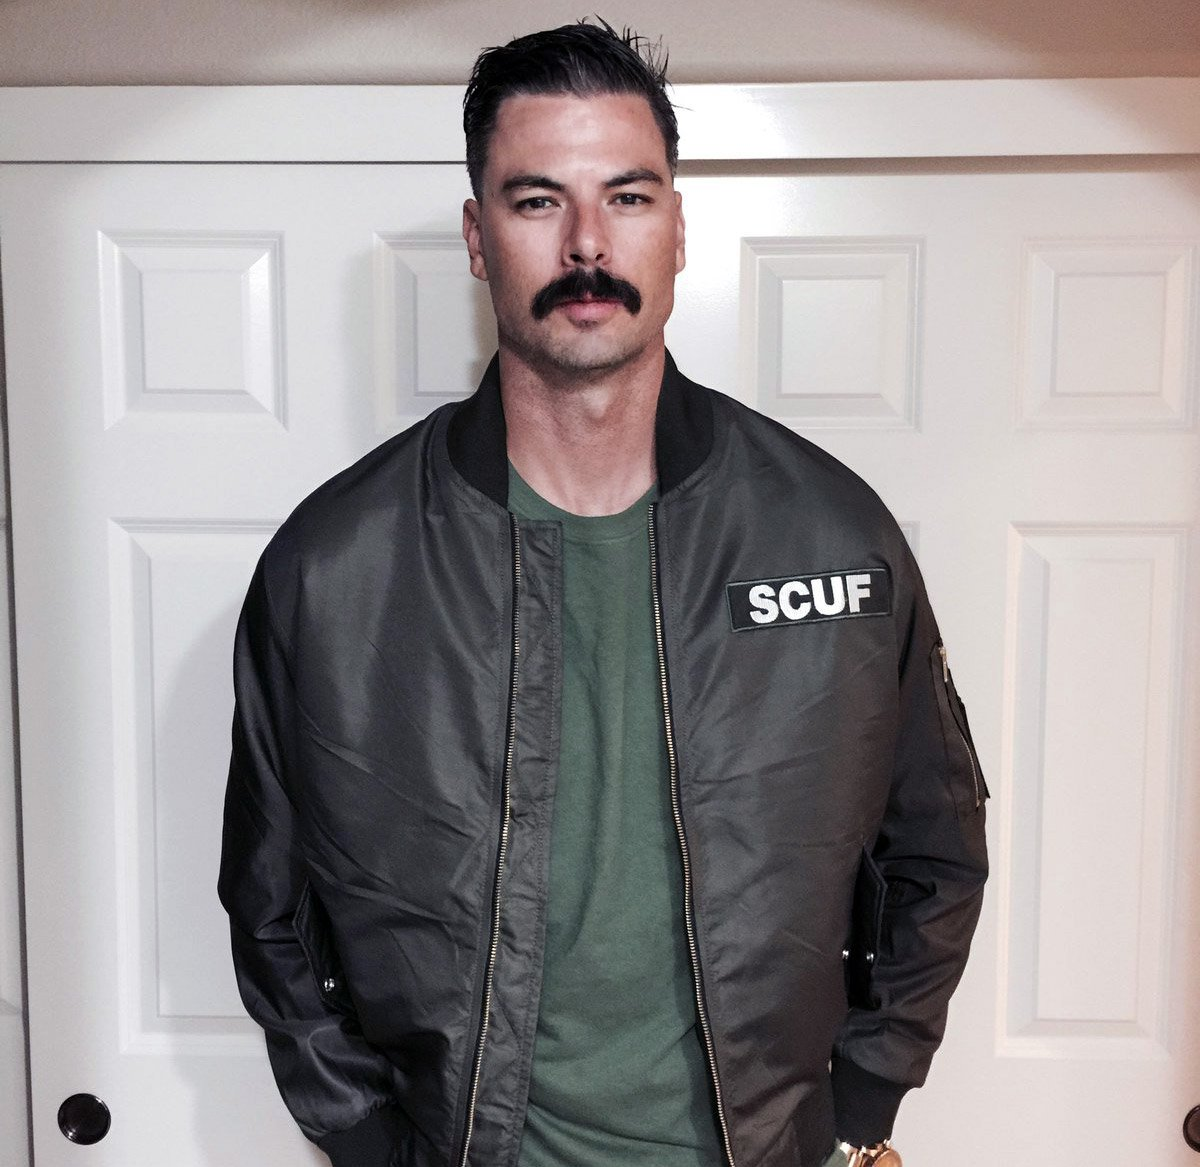 The 36-year old son of father (?) and mother(?) Dr DisRespect in 2018 photo. Dr DisRespect earned a  million dollar salary - leaving the net worth at  million in 2018